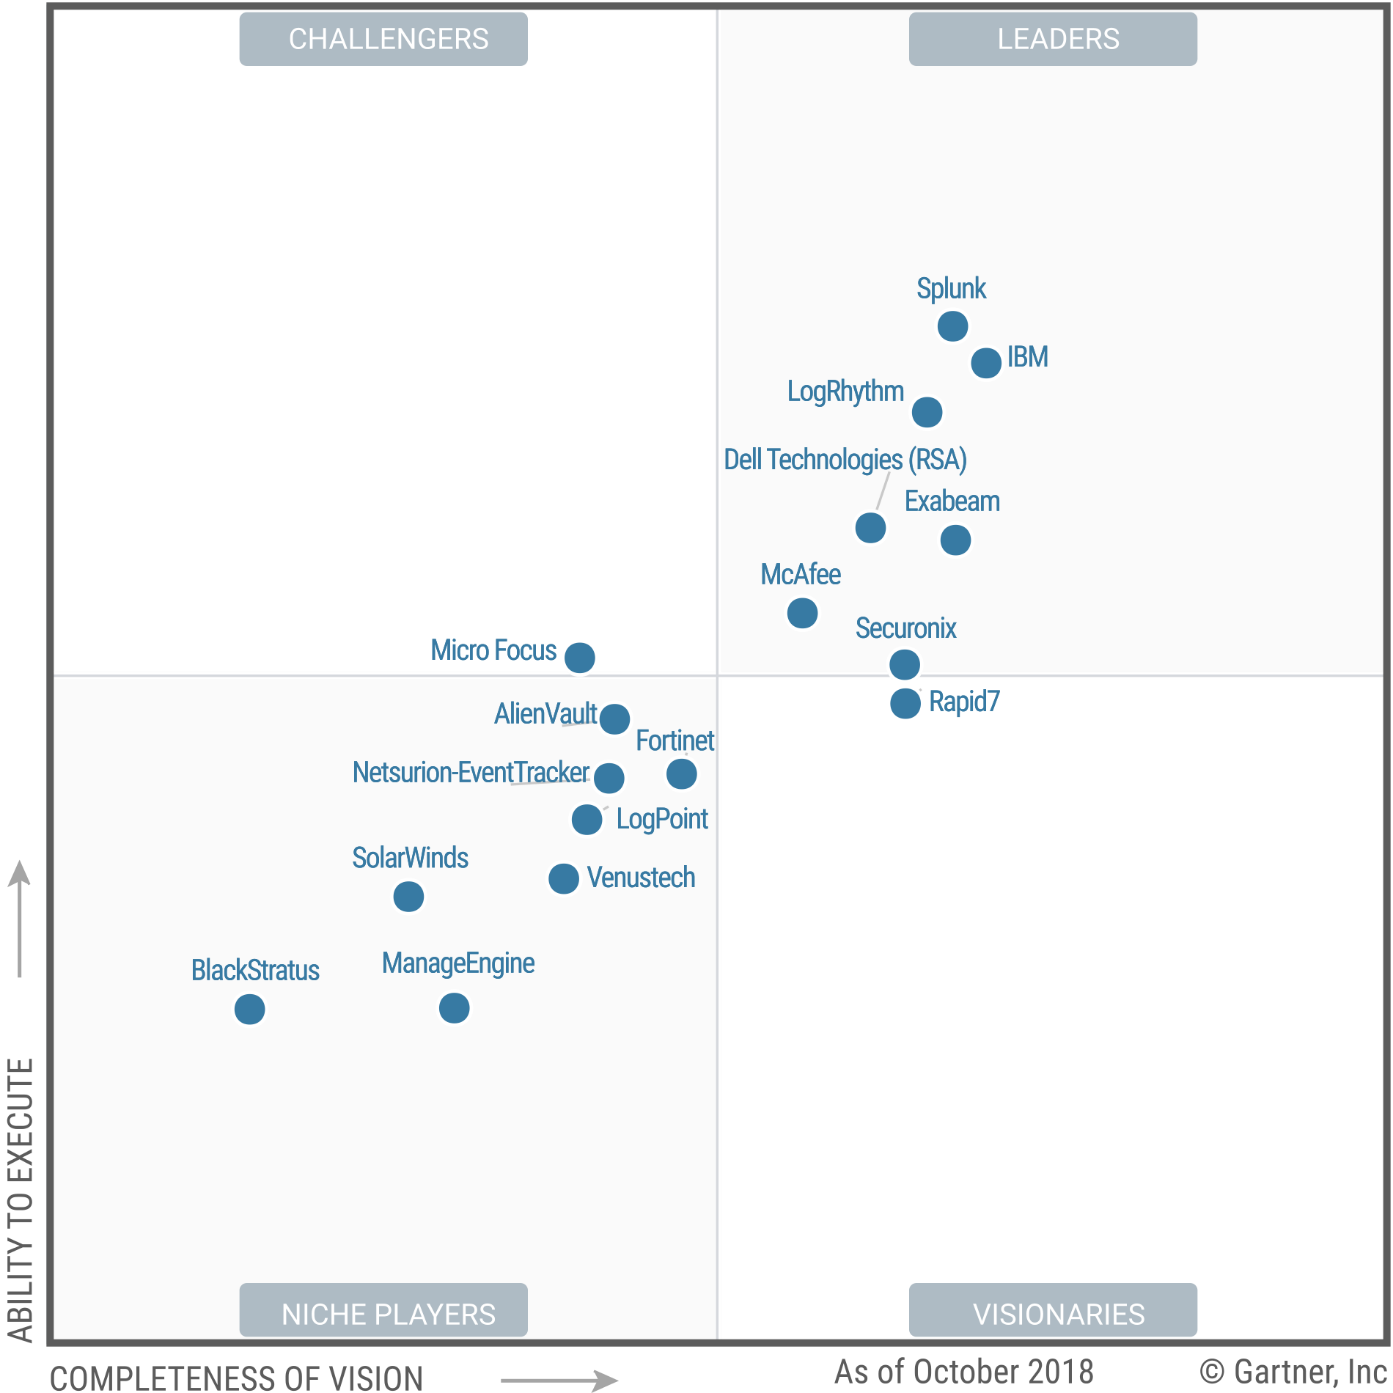 Magic Quadrant for Security Information and Event Management 2018 (G00348811)